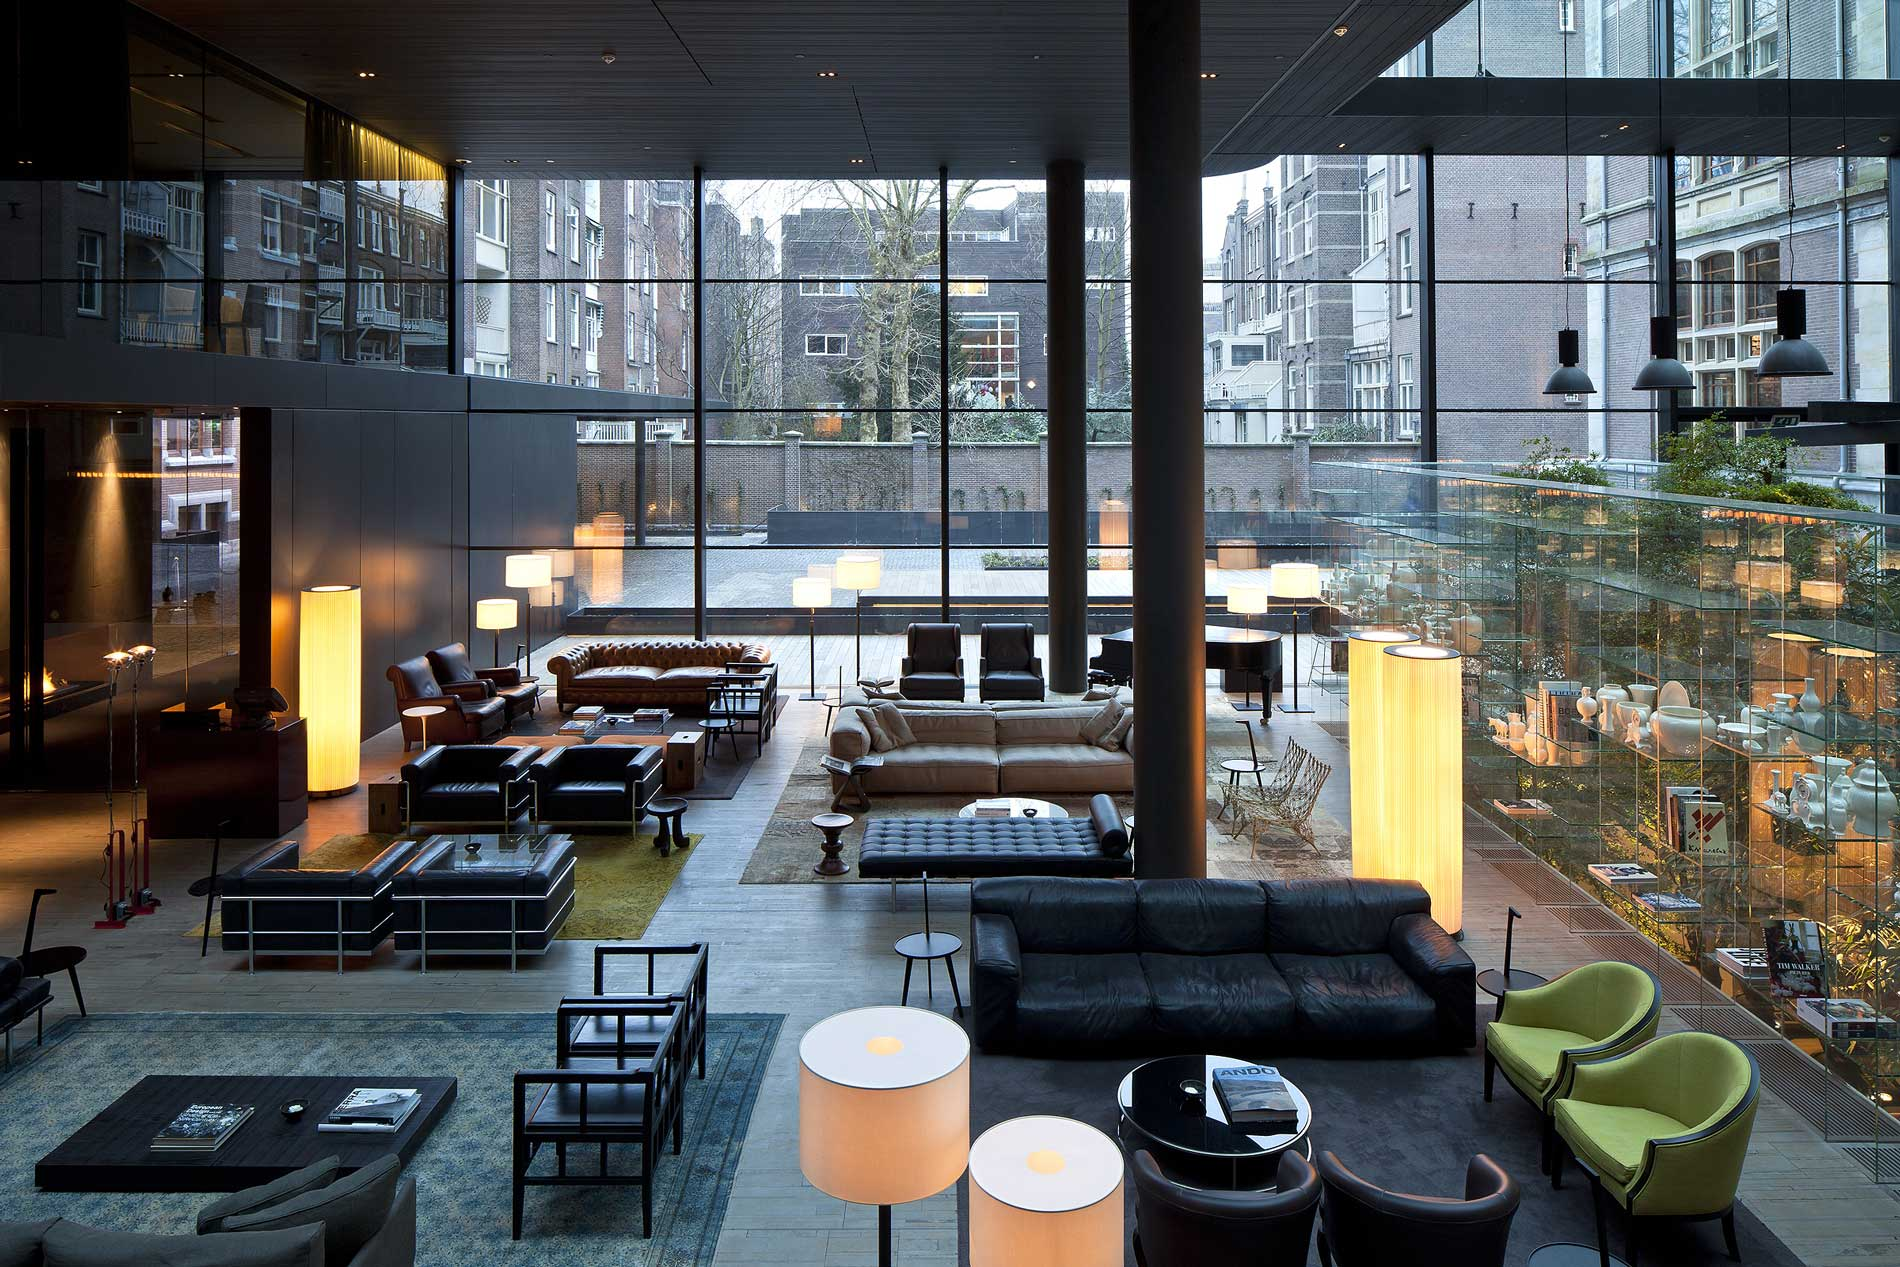 Conservatorium hotel by piero lissoni for Design hotel amsterdam